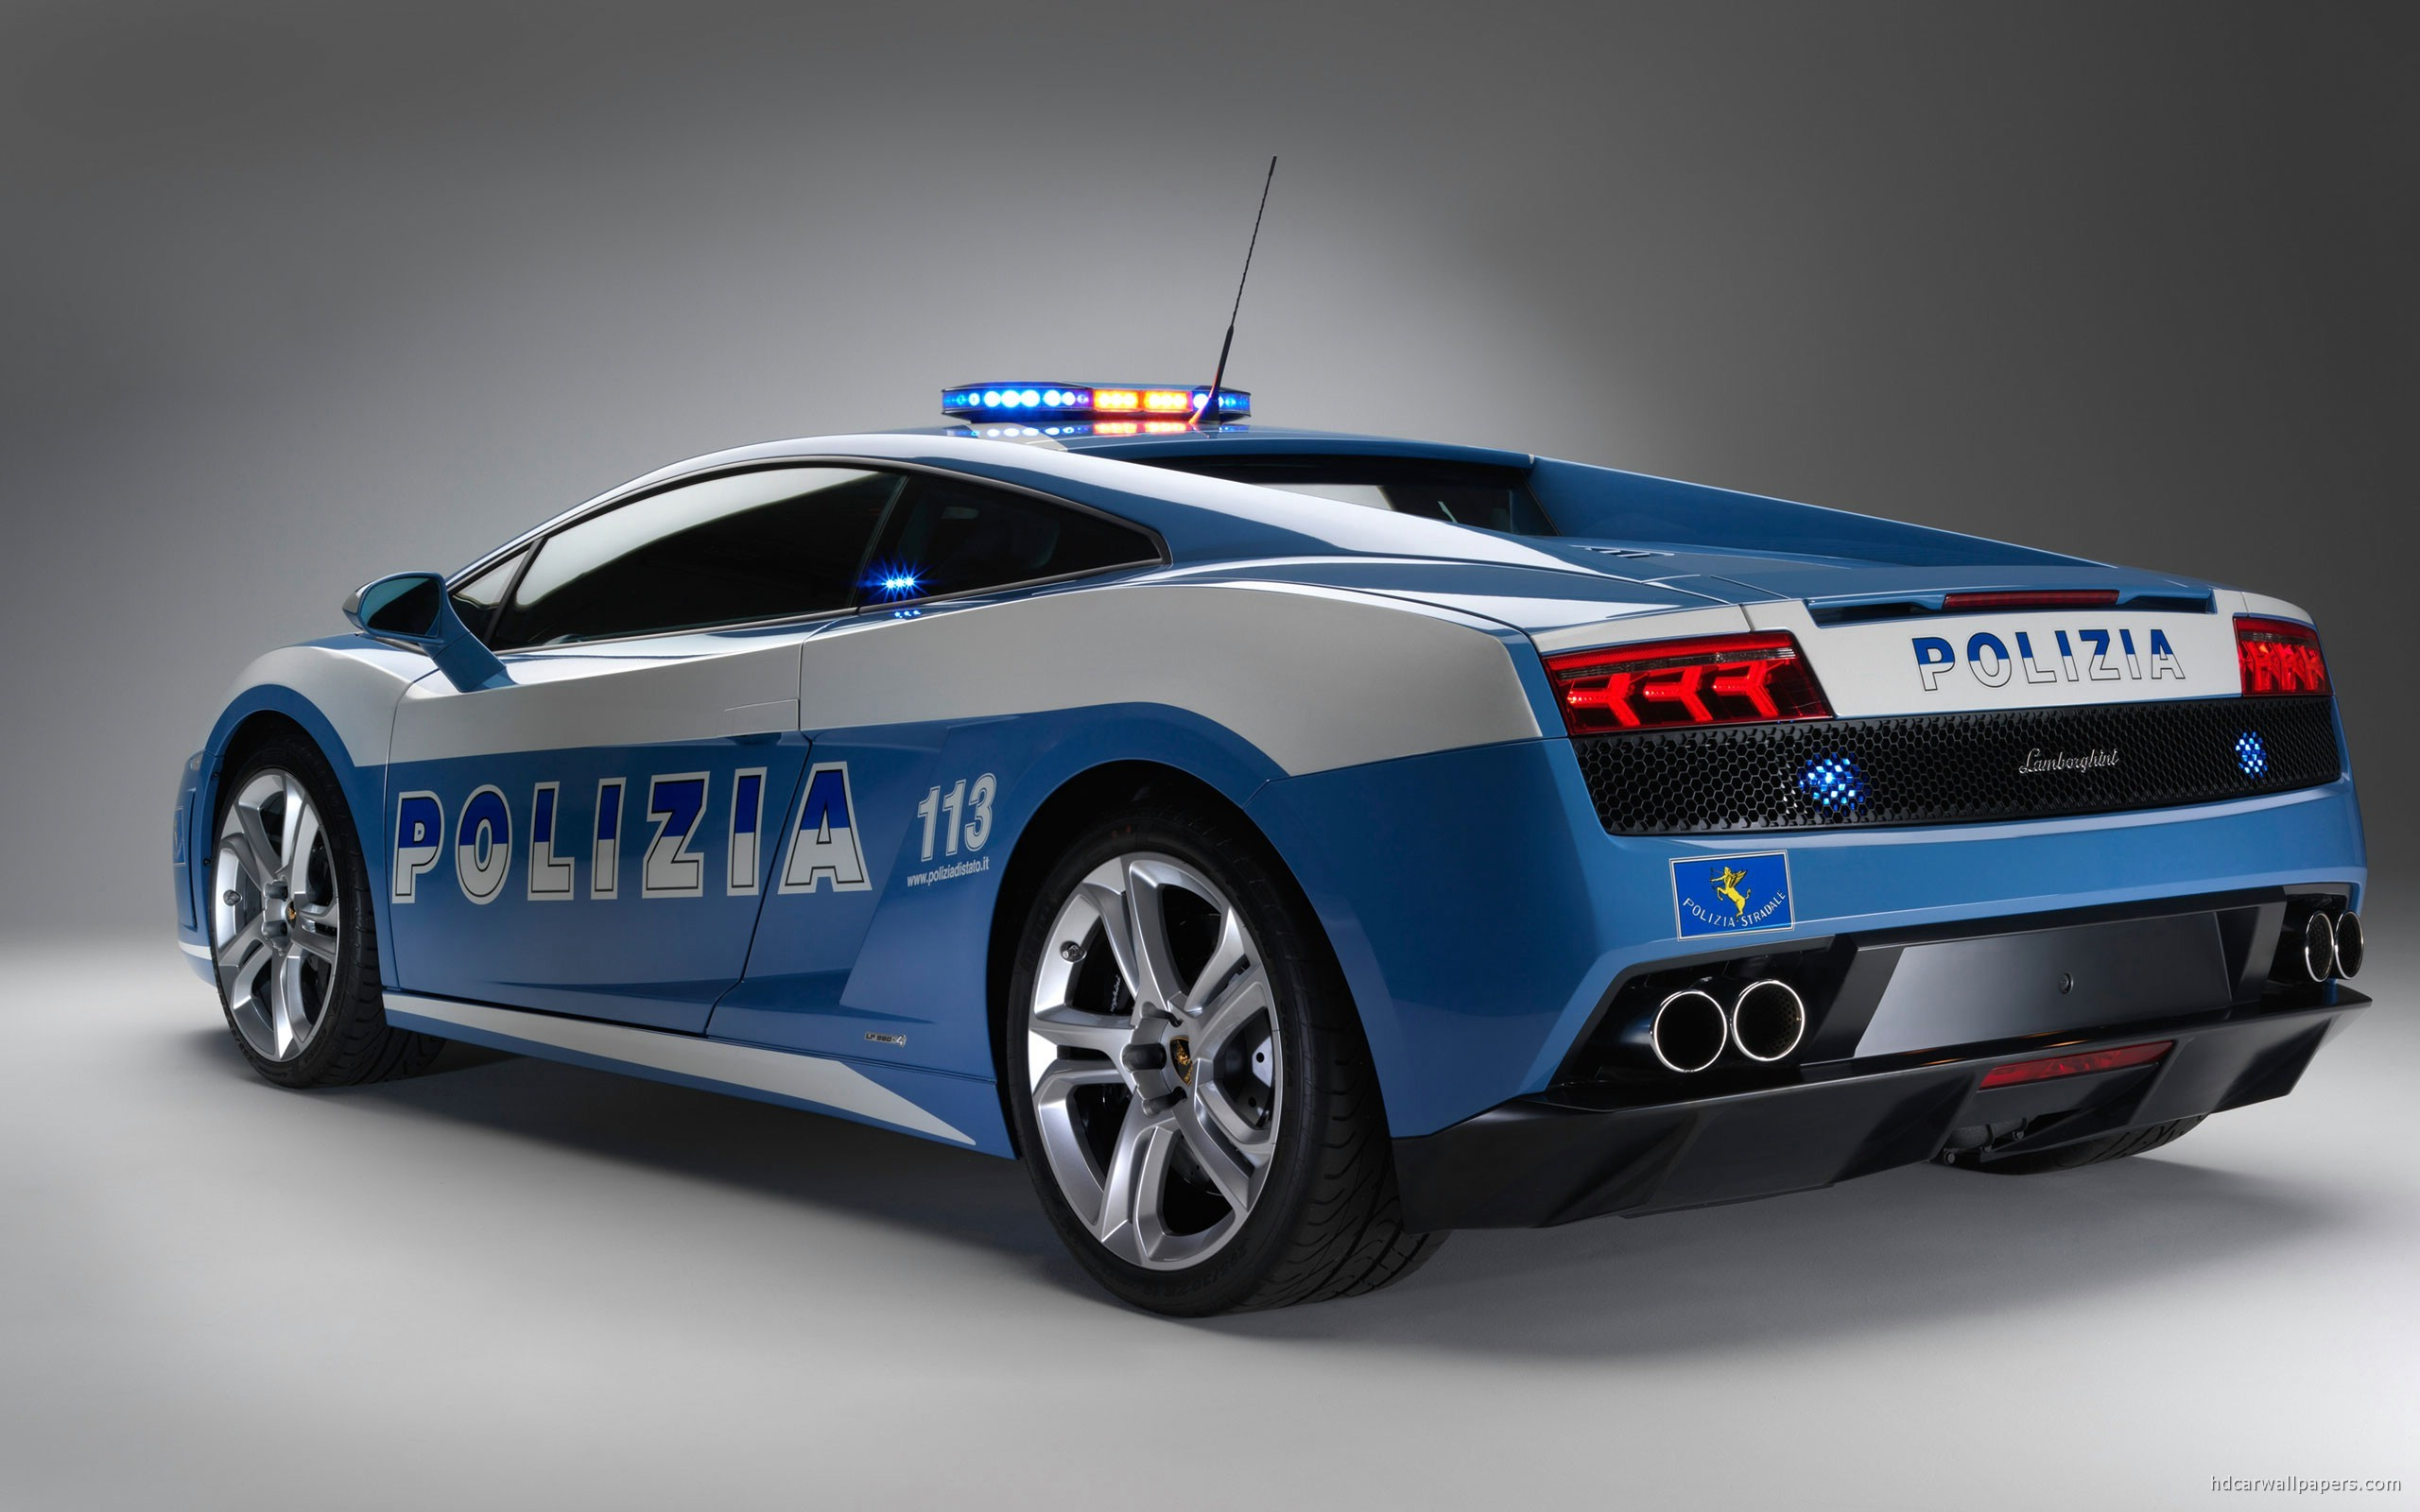 Res: 2560x1600, Lamborghini Gallardo Police Car Wallpaper